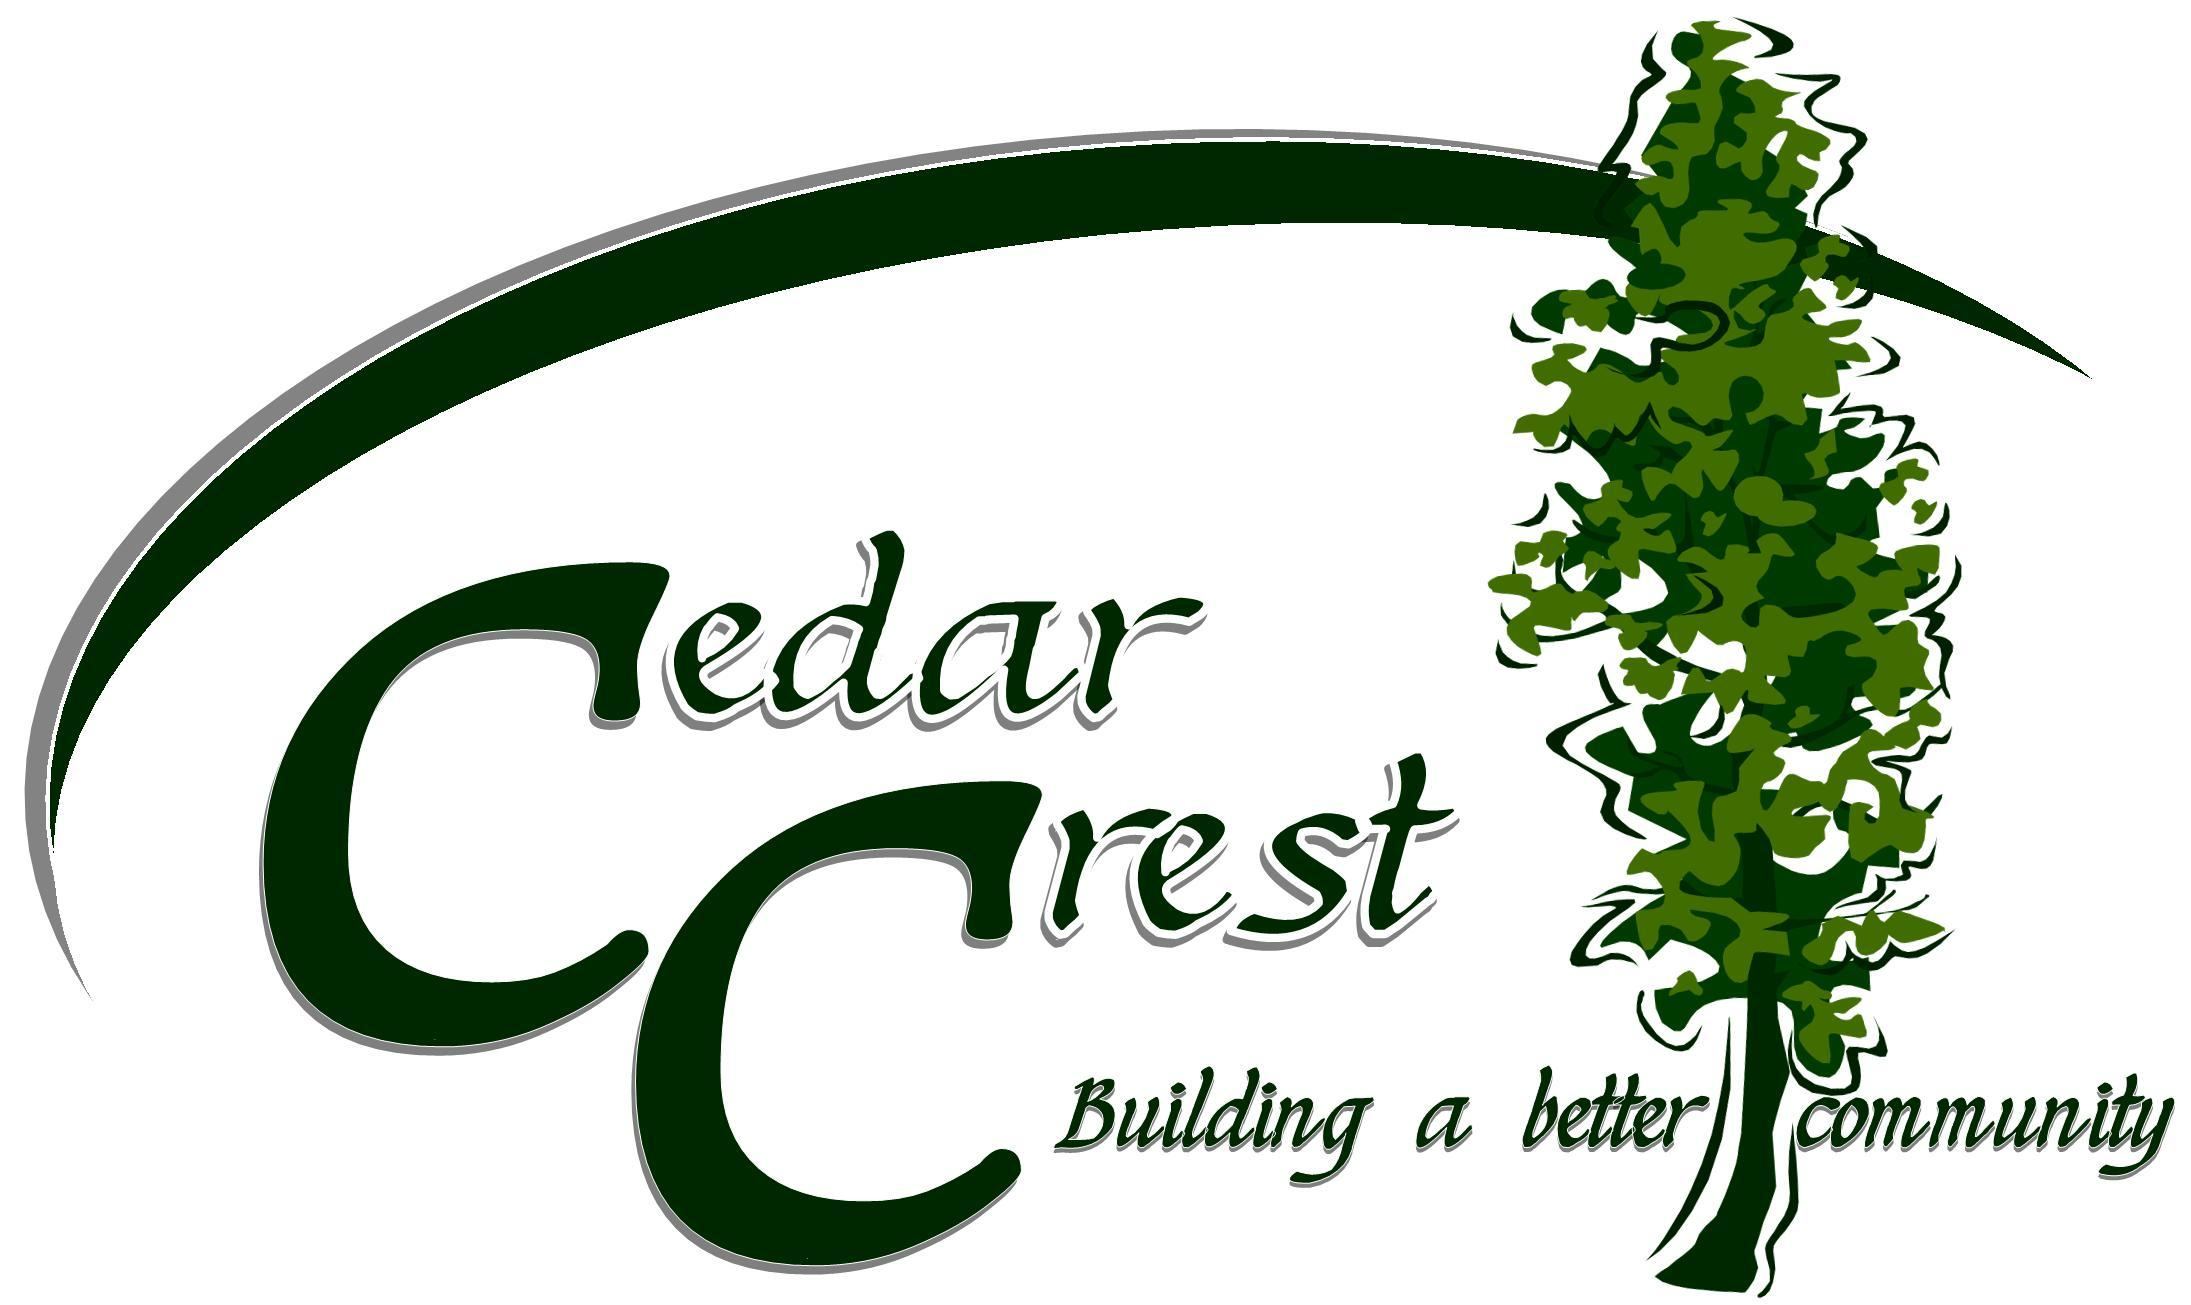 Cedar Crest: Building a Better Community